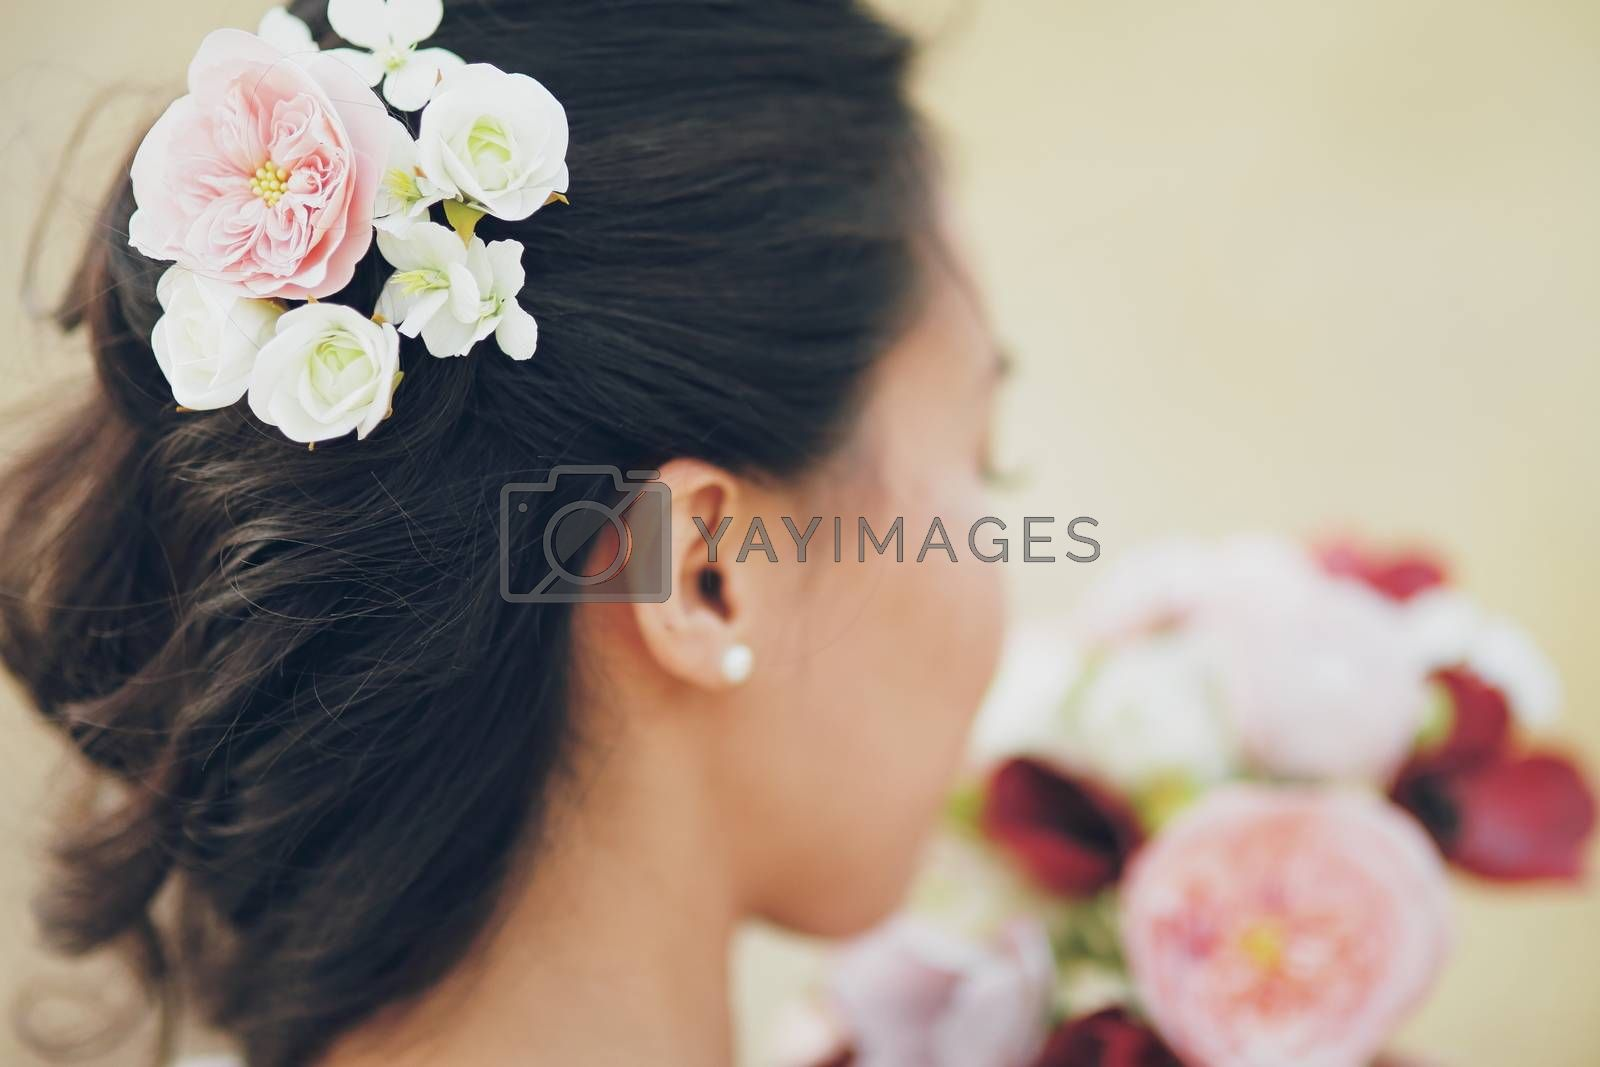 Wedding. The girl's hair. Flowers in hair. Wedding bouquet. A beautiful couple. High quality photo